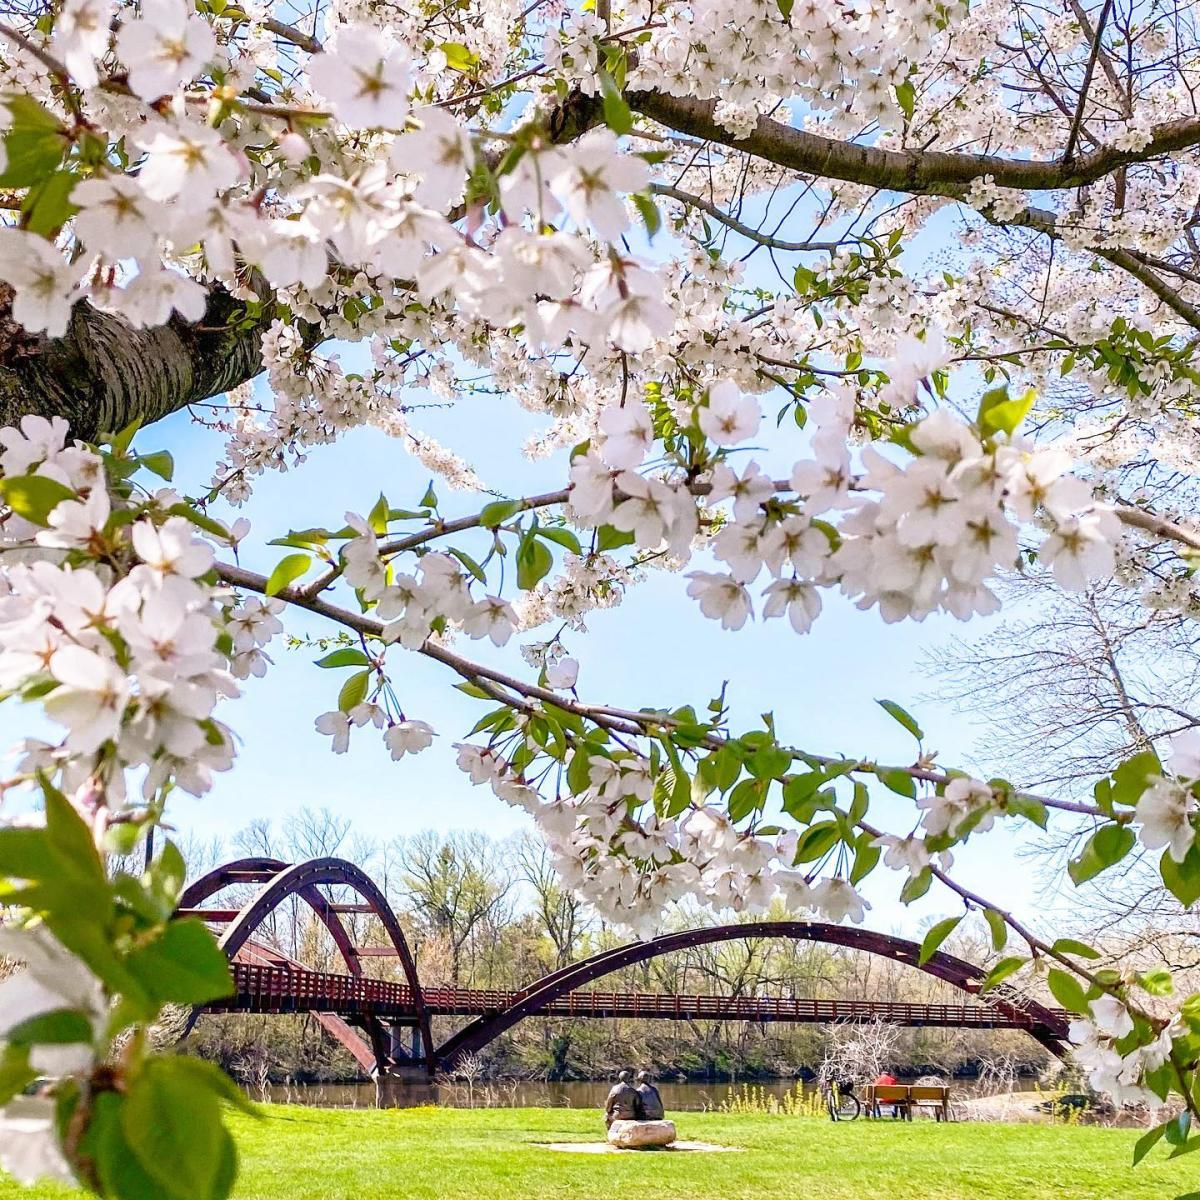 Beautiful spring tree blossoms framing the Tridge, a 3-legged pedestrian bridge in Midland